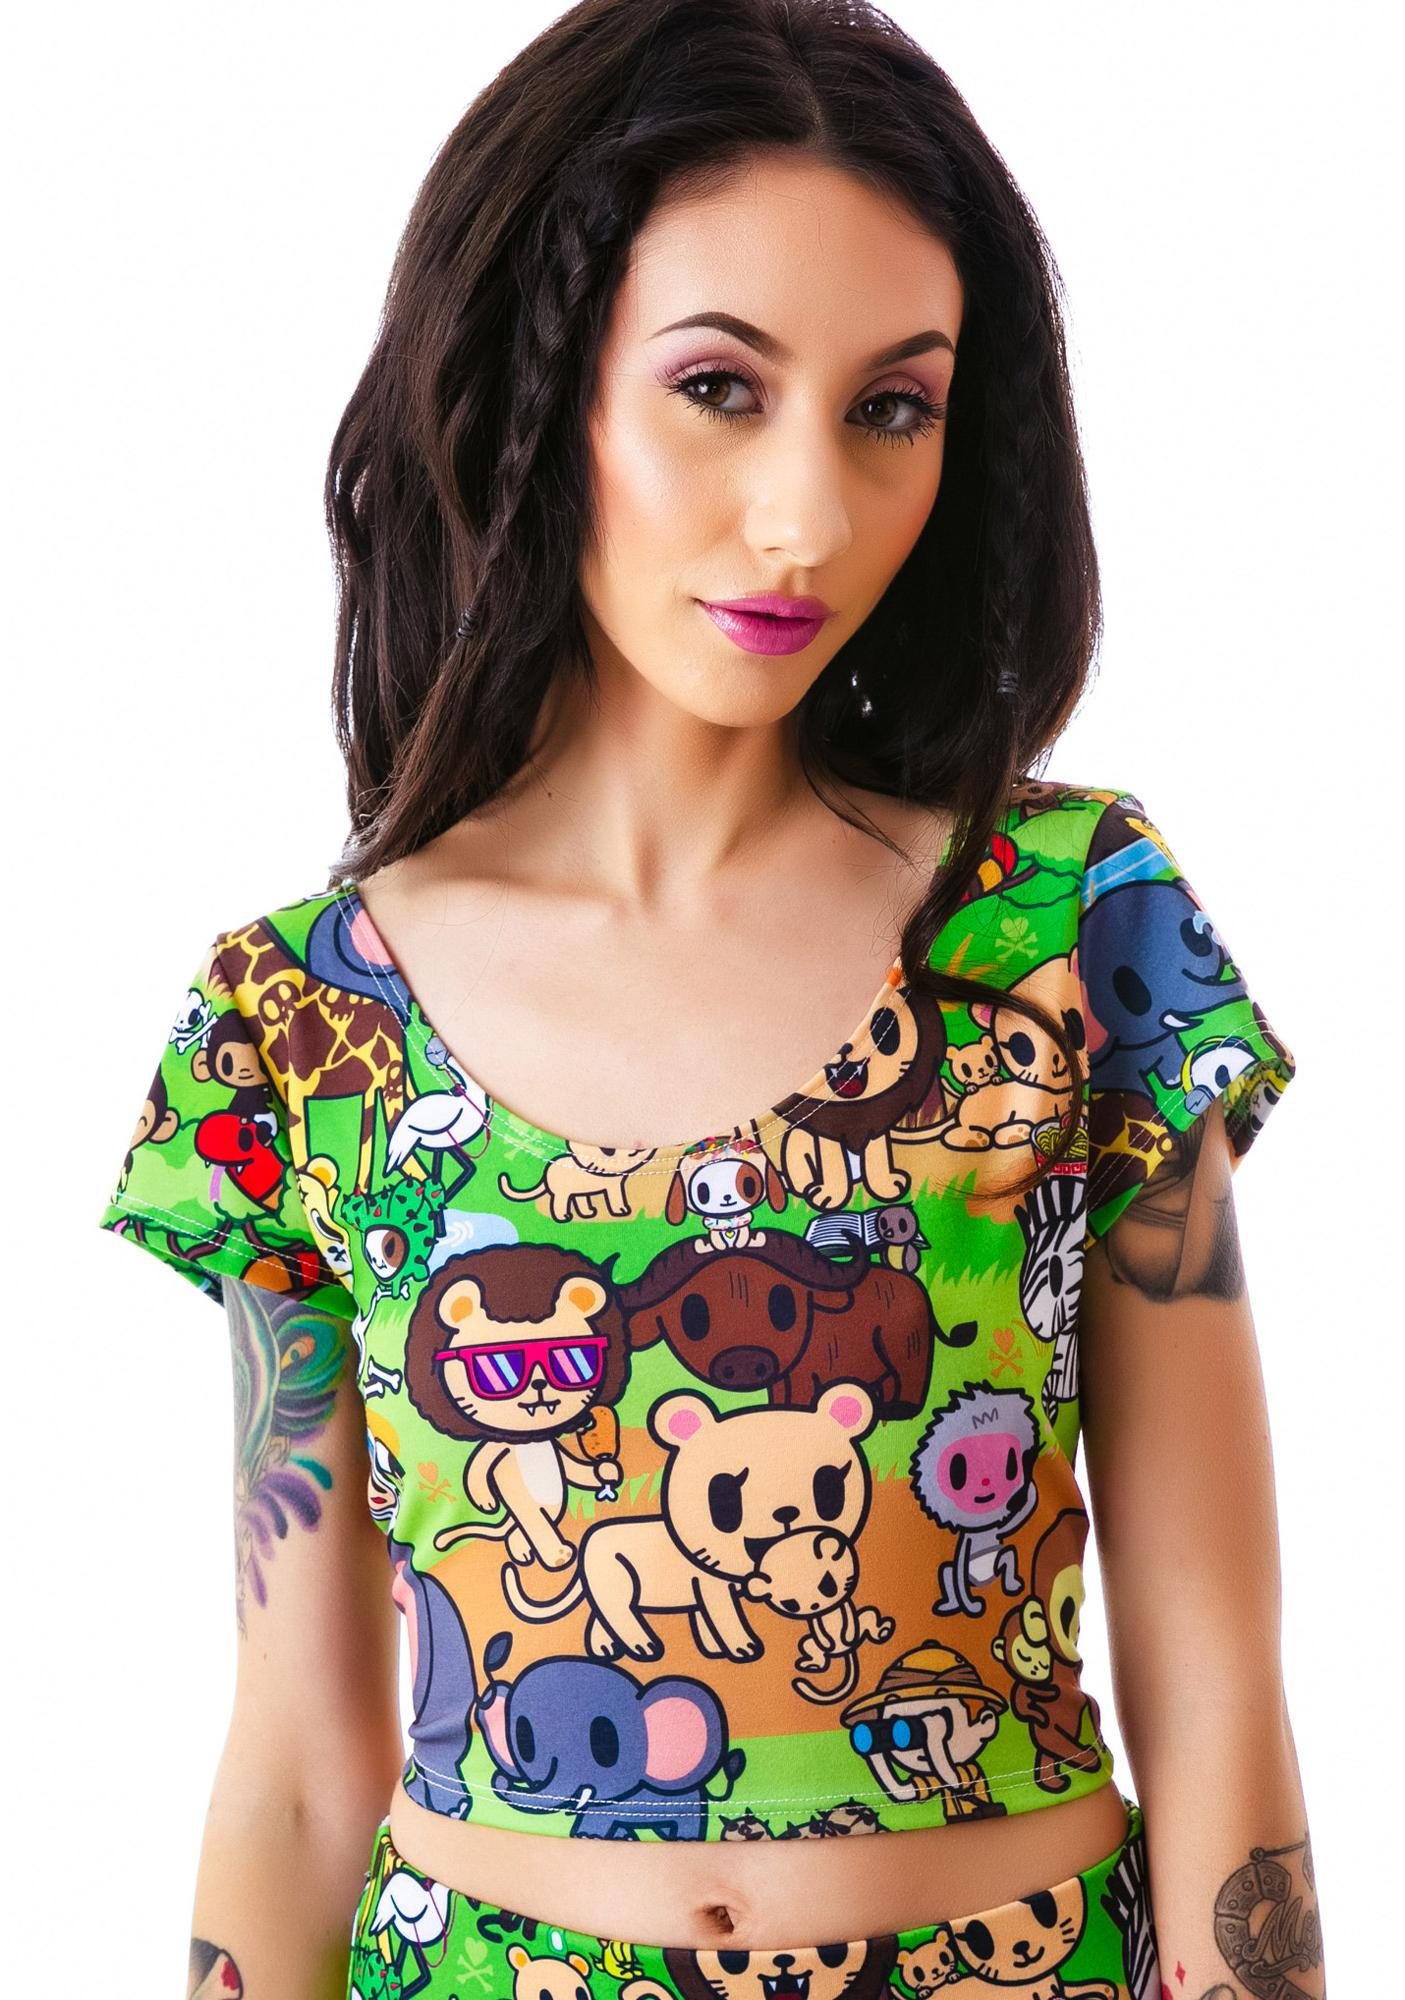 Japan L.A. x tokidoki Savannah Short Sleeve Crop Top